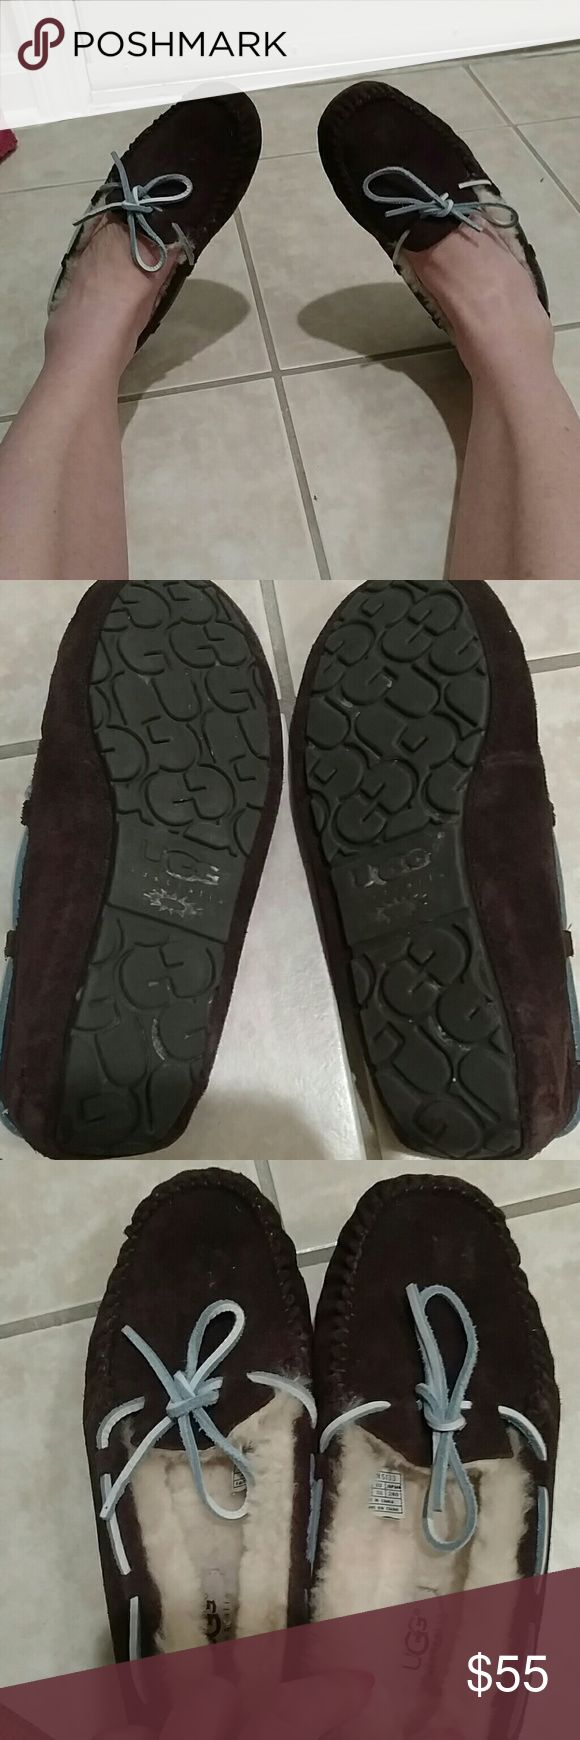 Ugg slippers Great ugg slippers in good condition just worn a couple times. Chocolate brown size 7 but I think they are roomy and be 7.5 as well and work for wide feet. Upper is leather, lining is genuine sheepskin, and out sole is rubber UGG Shoes Slippers